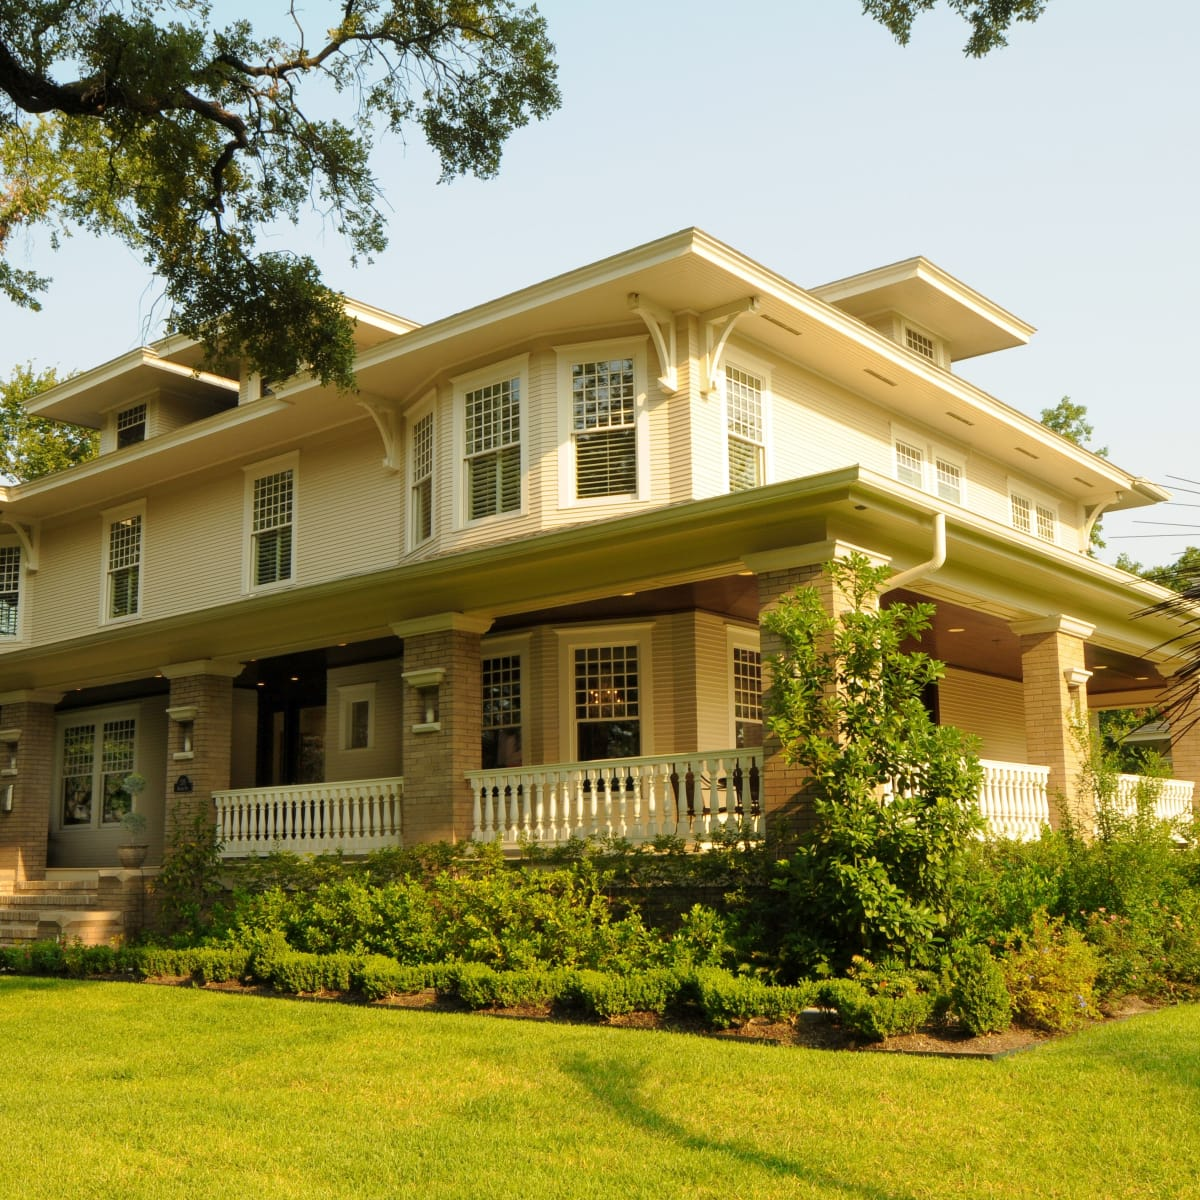 News, Shelby, Heritage Society tour, Baldwin House, Aug. 2015